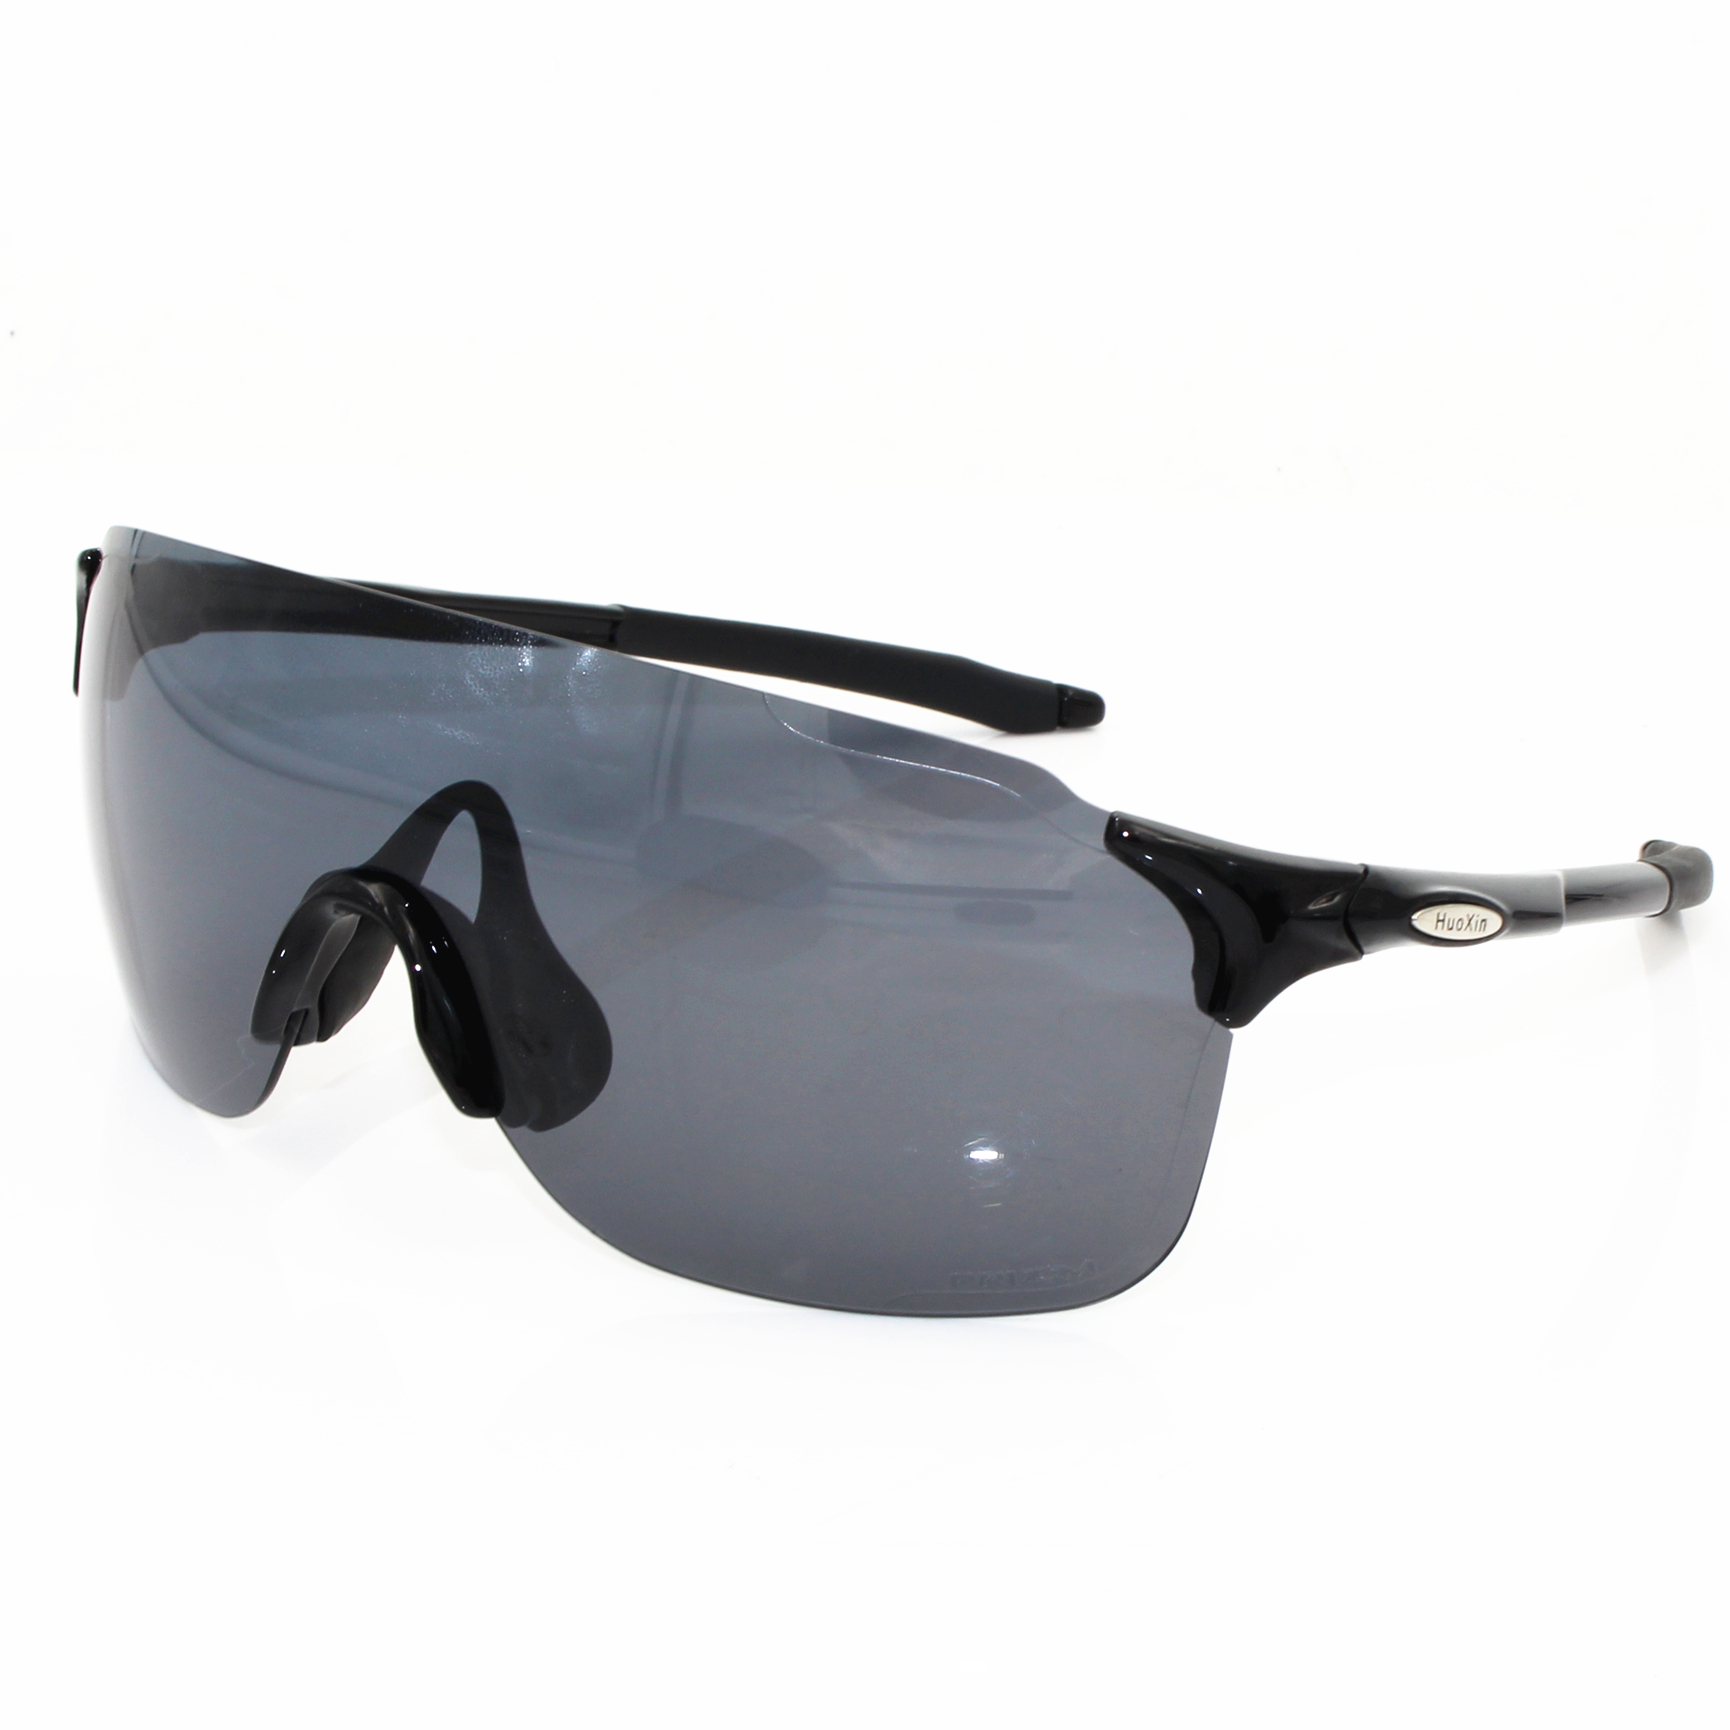 Cycling-Eyewear Sunglasses Mountain-Road-Bicycle Evzero Polarized Speedcraft MTB Men